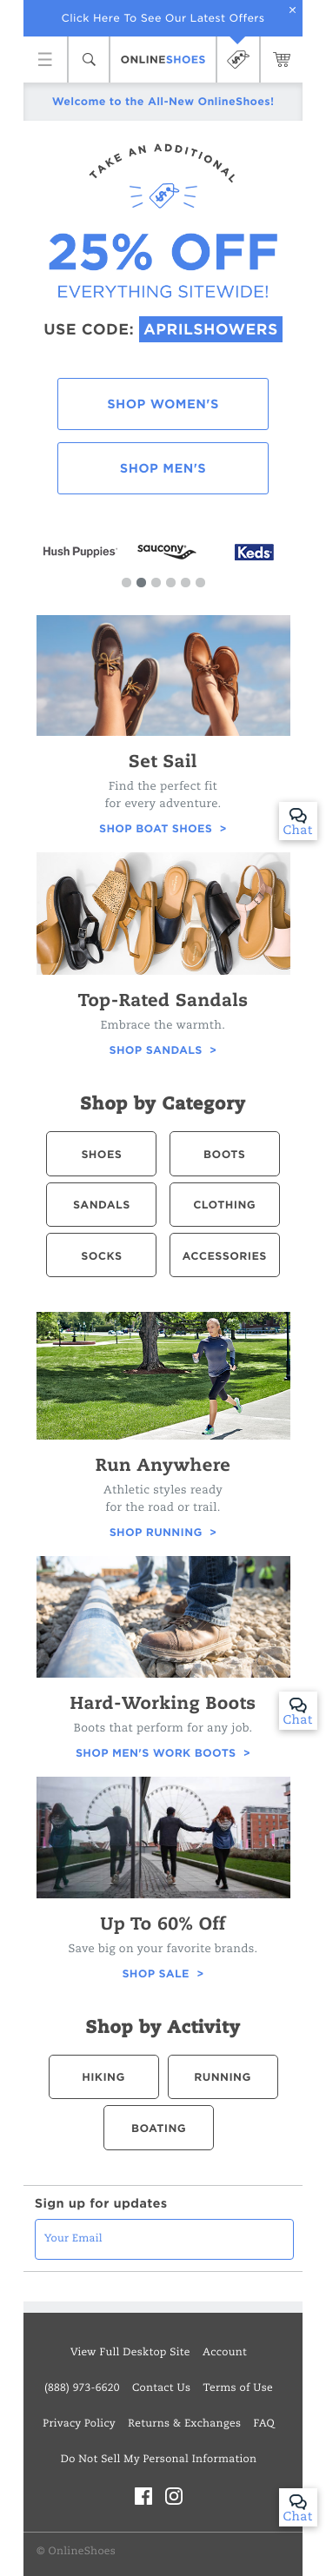 Onlineshoes.com Coupon